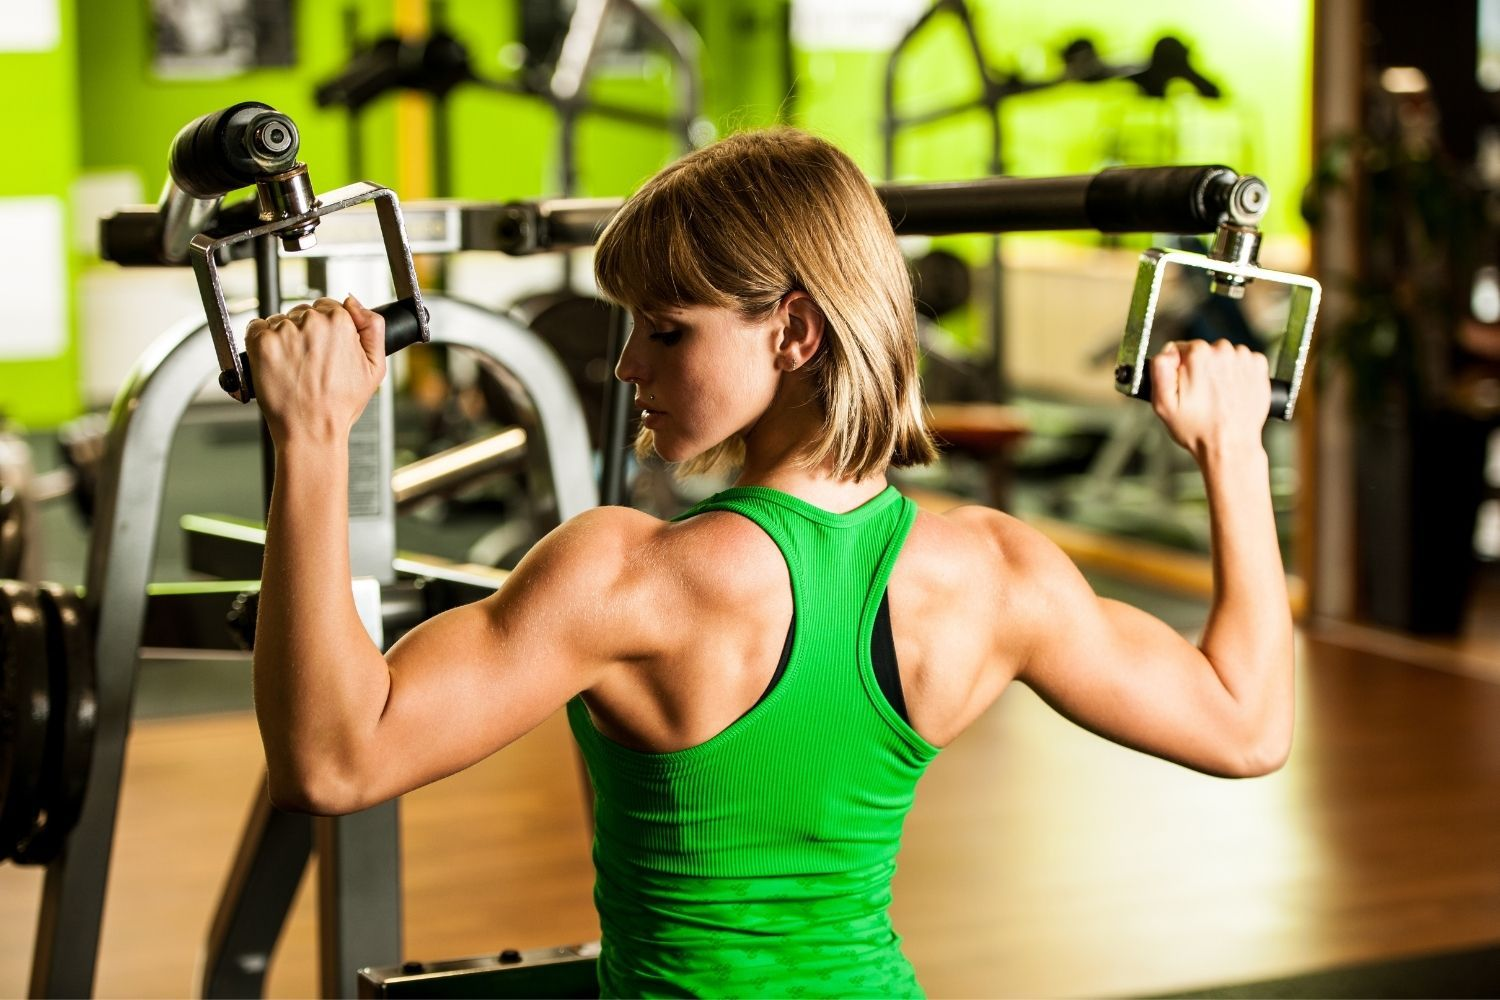 Discover the hidden secrets of gaining muscle the Pros use.